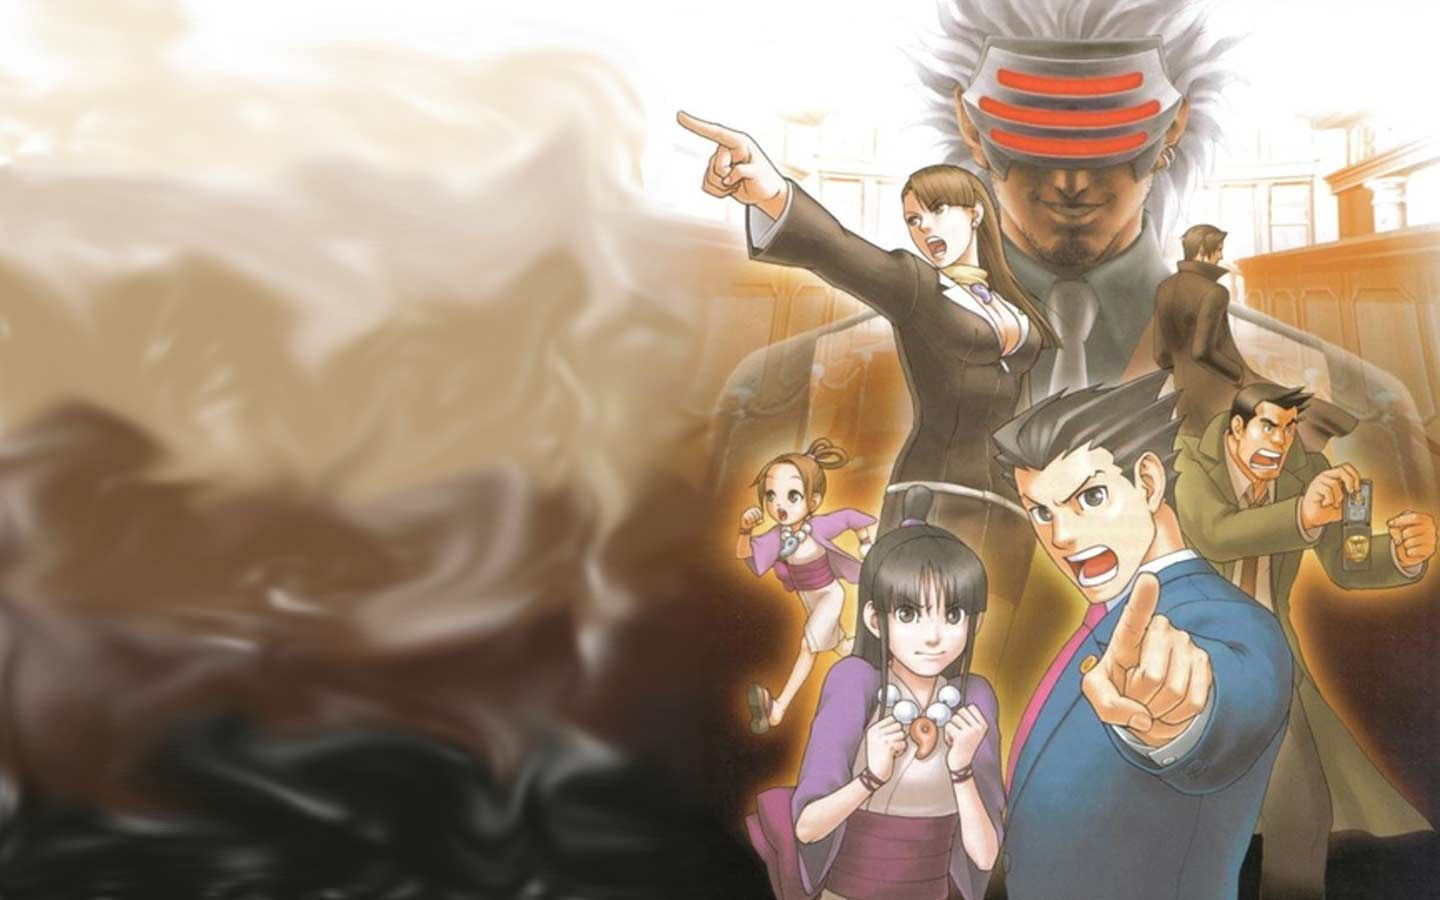 Free Screensaver Wallpapers For Phoenix Wright Ace Attorney